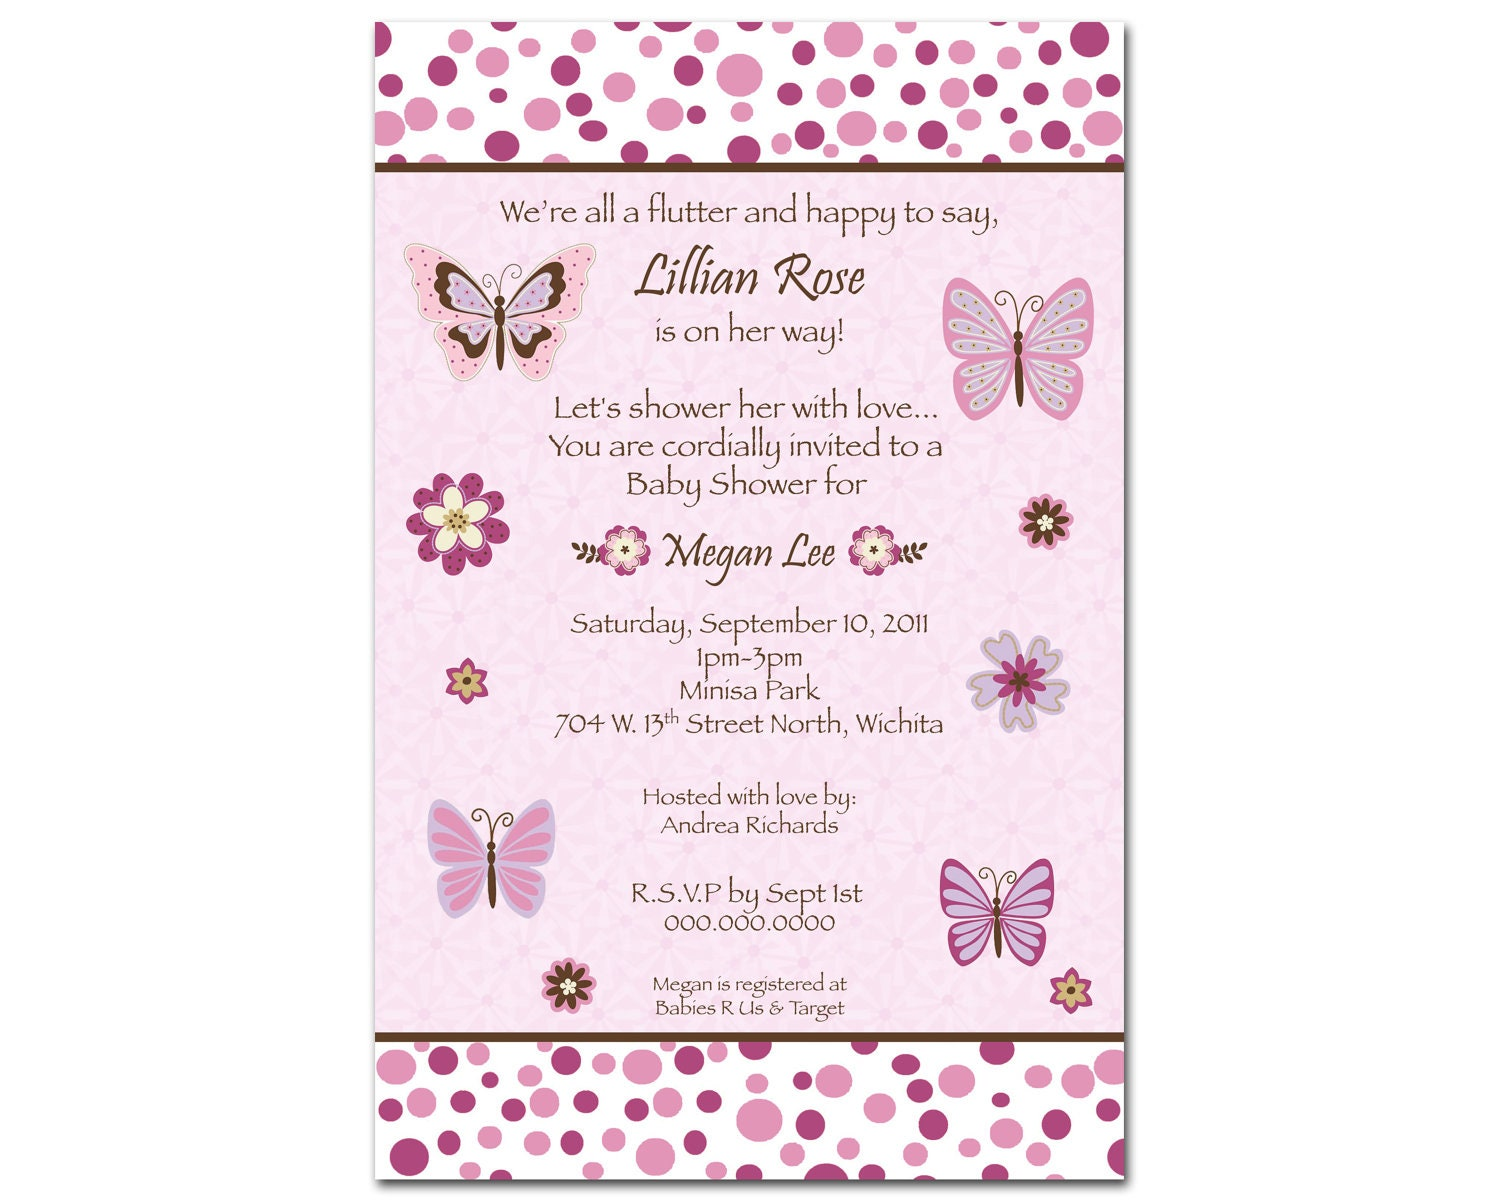 Free Electronic Baby Shower Invitations Templates as awesome invitation example